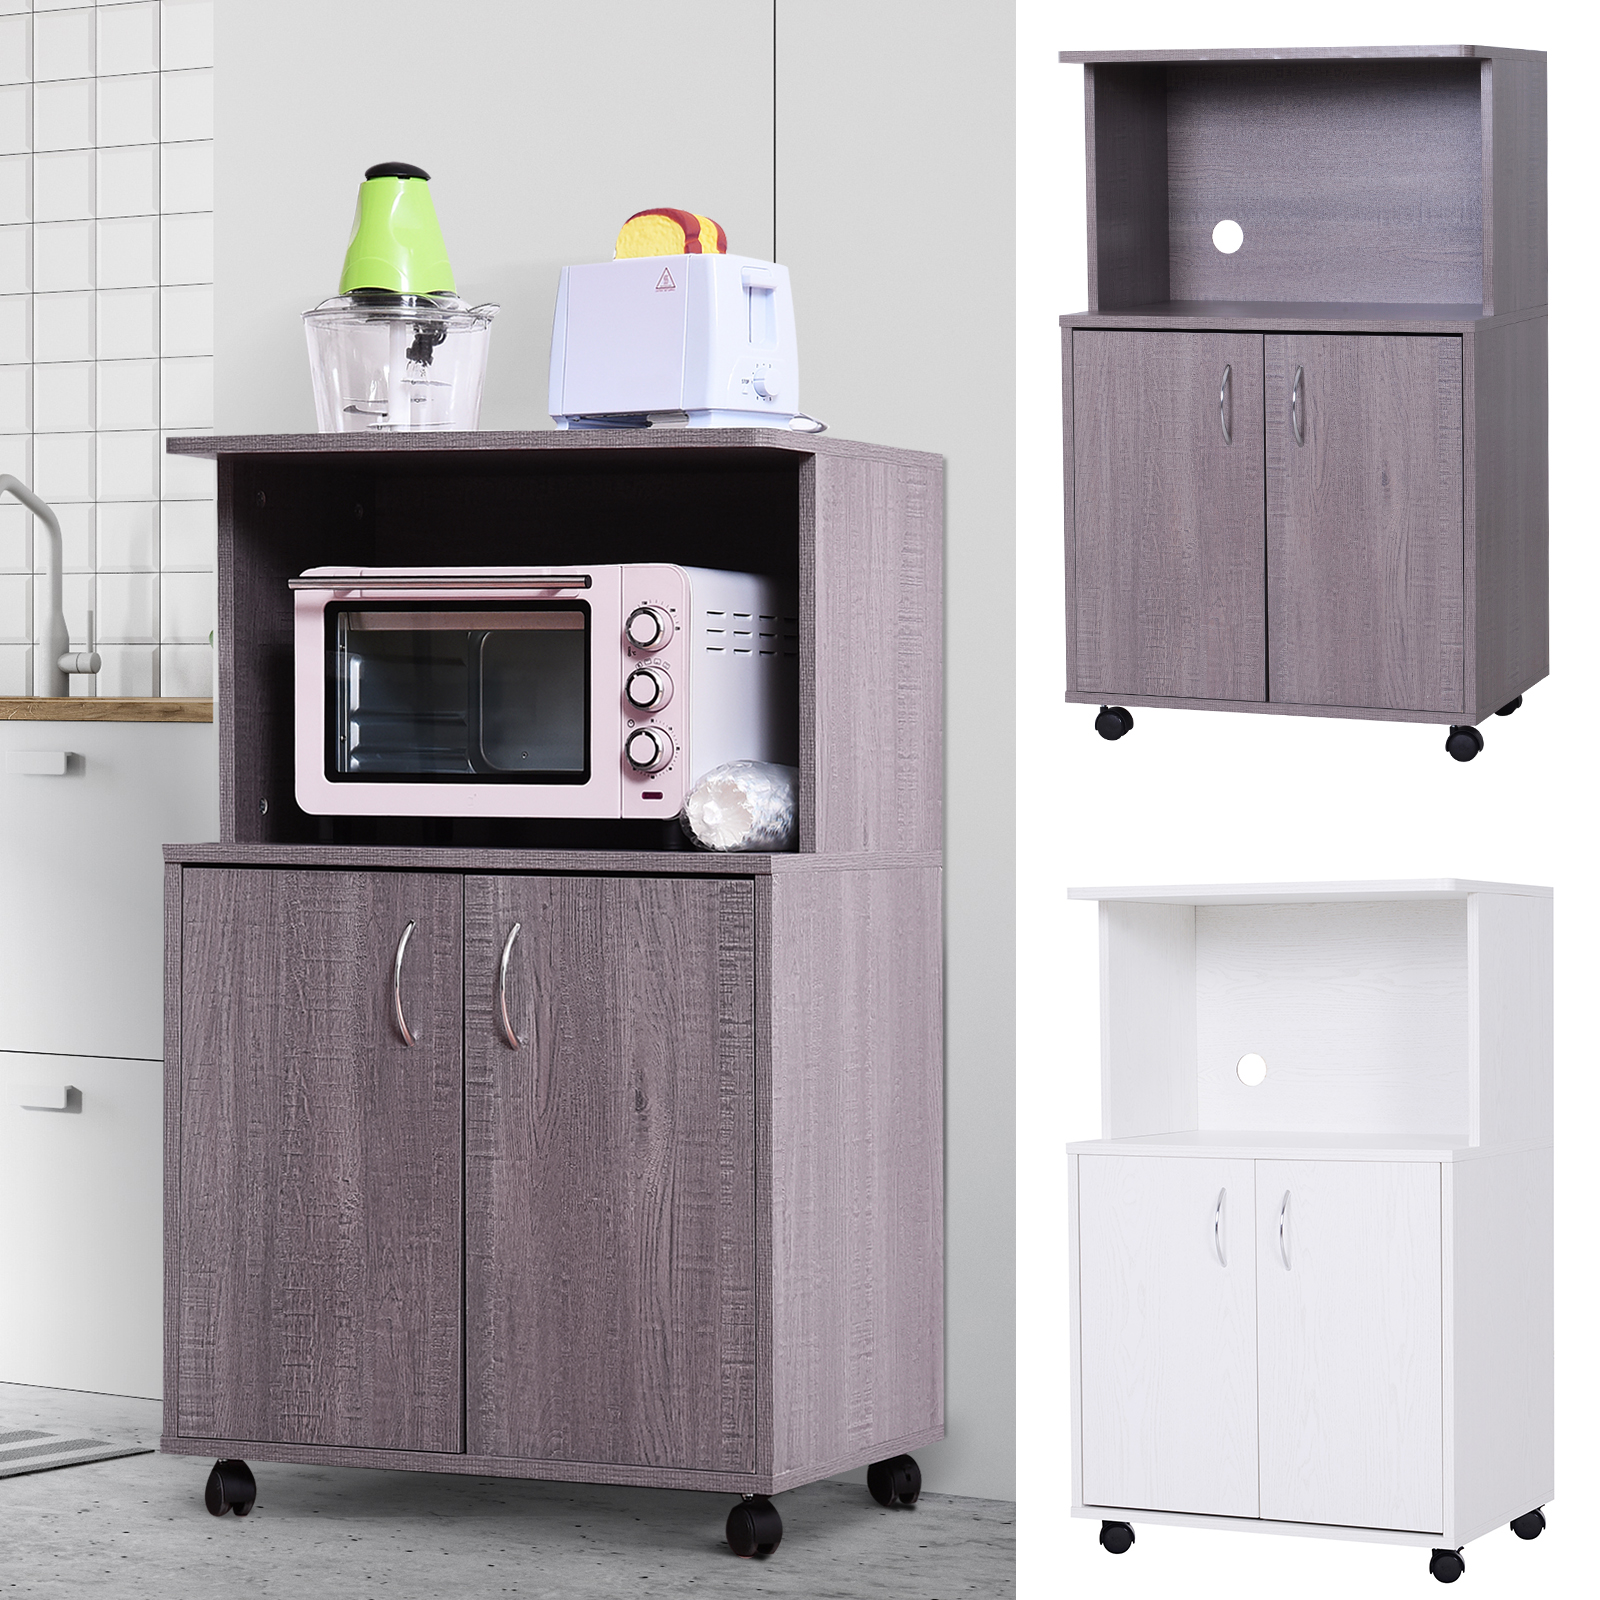 Pleasant Details About Rolling Kitchen Trolley Microwave Cart 2 Door Cabinet Storage Shelves W Wheels Home Remodeling Inspirations Propsscottssportslandcom